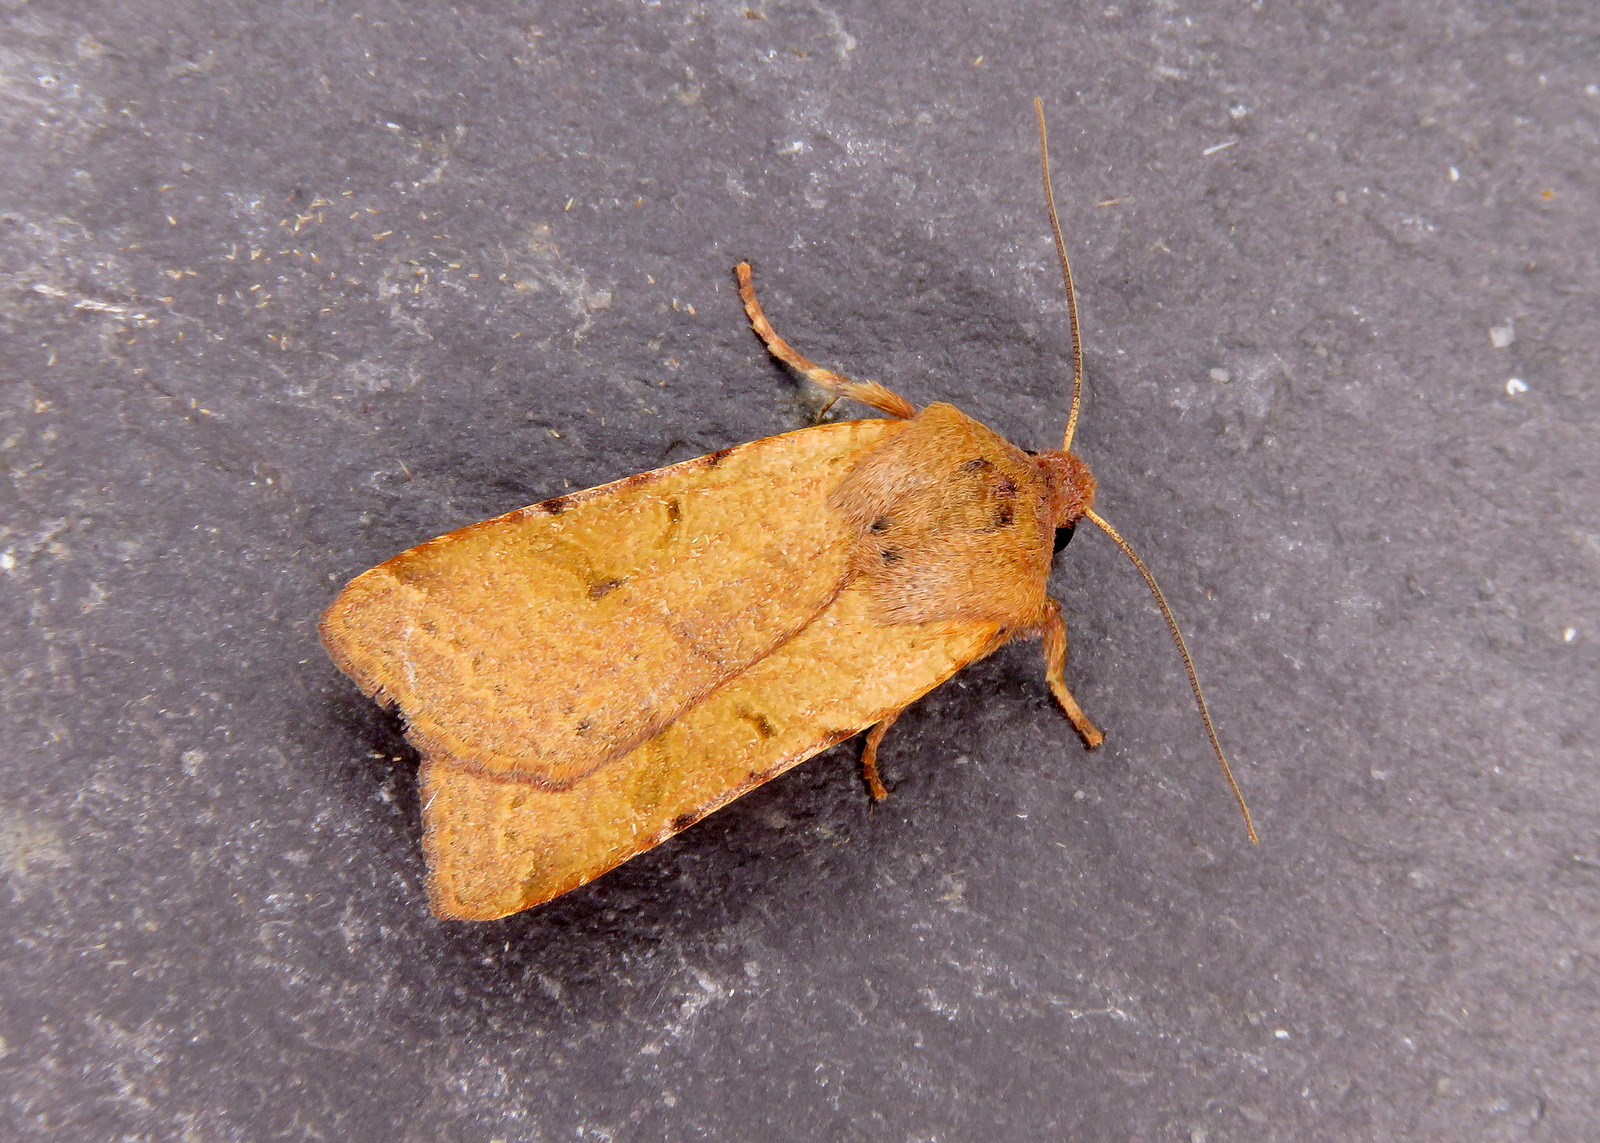 73.186 Beaded Chestnut - Agrochola lychnidis